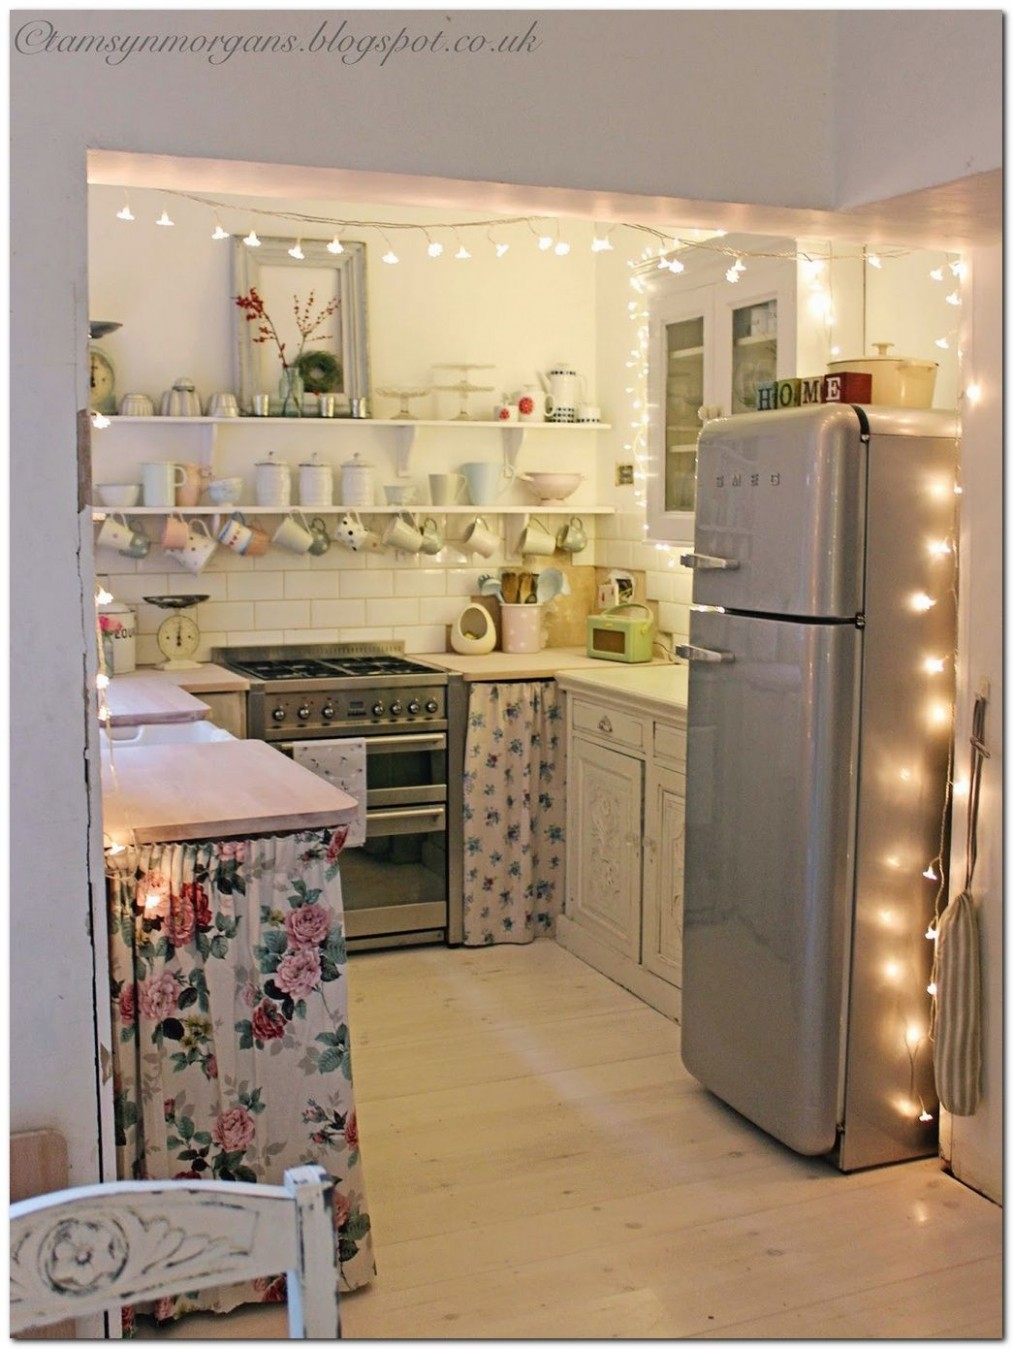 8+ Ideas to Decorate Small Apartment on a Budget - The Urban  - Small Apartment Kitchen Decor Ideas